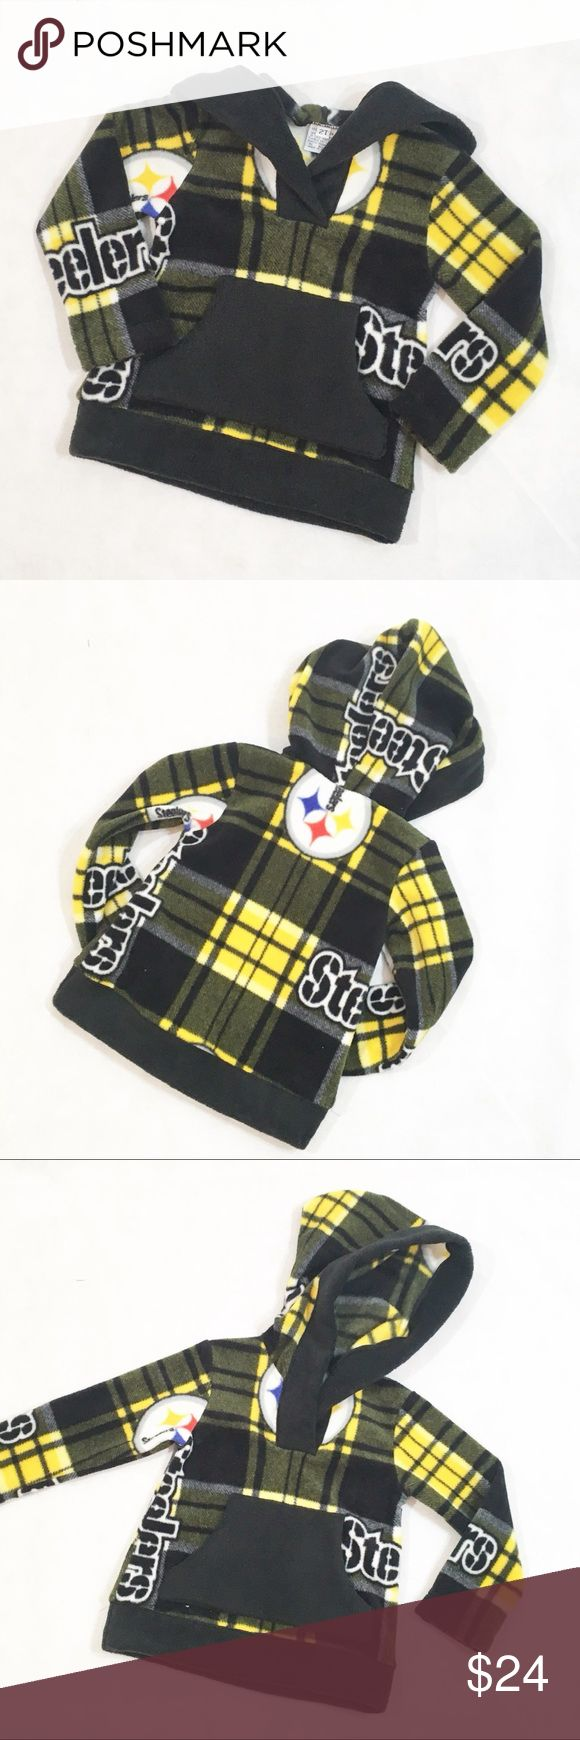 Custom Handmade Steelers Hoodie Custom listing for @maxilover4526.  Fleece Steelers Hoodie.  Pre-washed fleece fabric, finished seams. Hand Made by lilpieceofattitude Shirts & Tops Sweatshirts & Hoodies